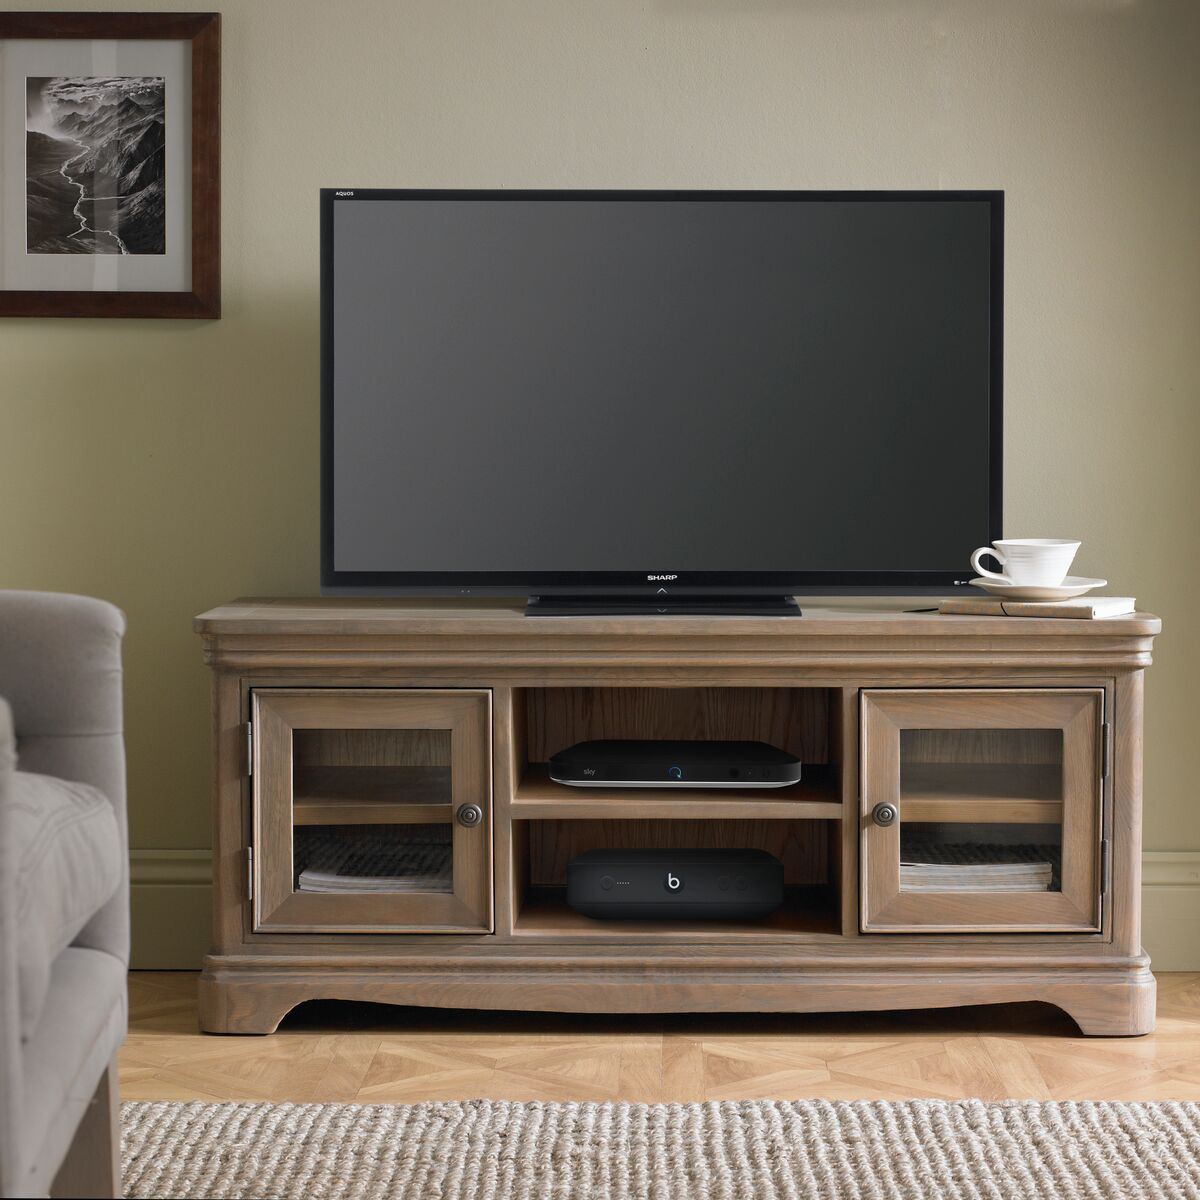 Hereford Colby Plasma TV Unit